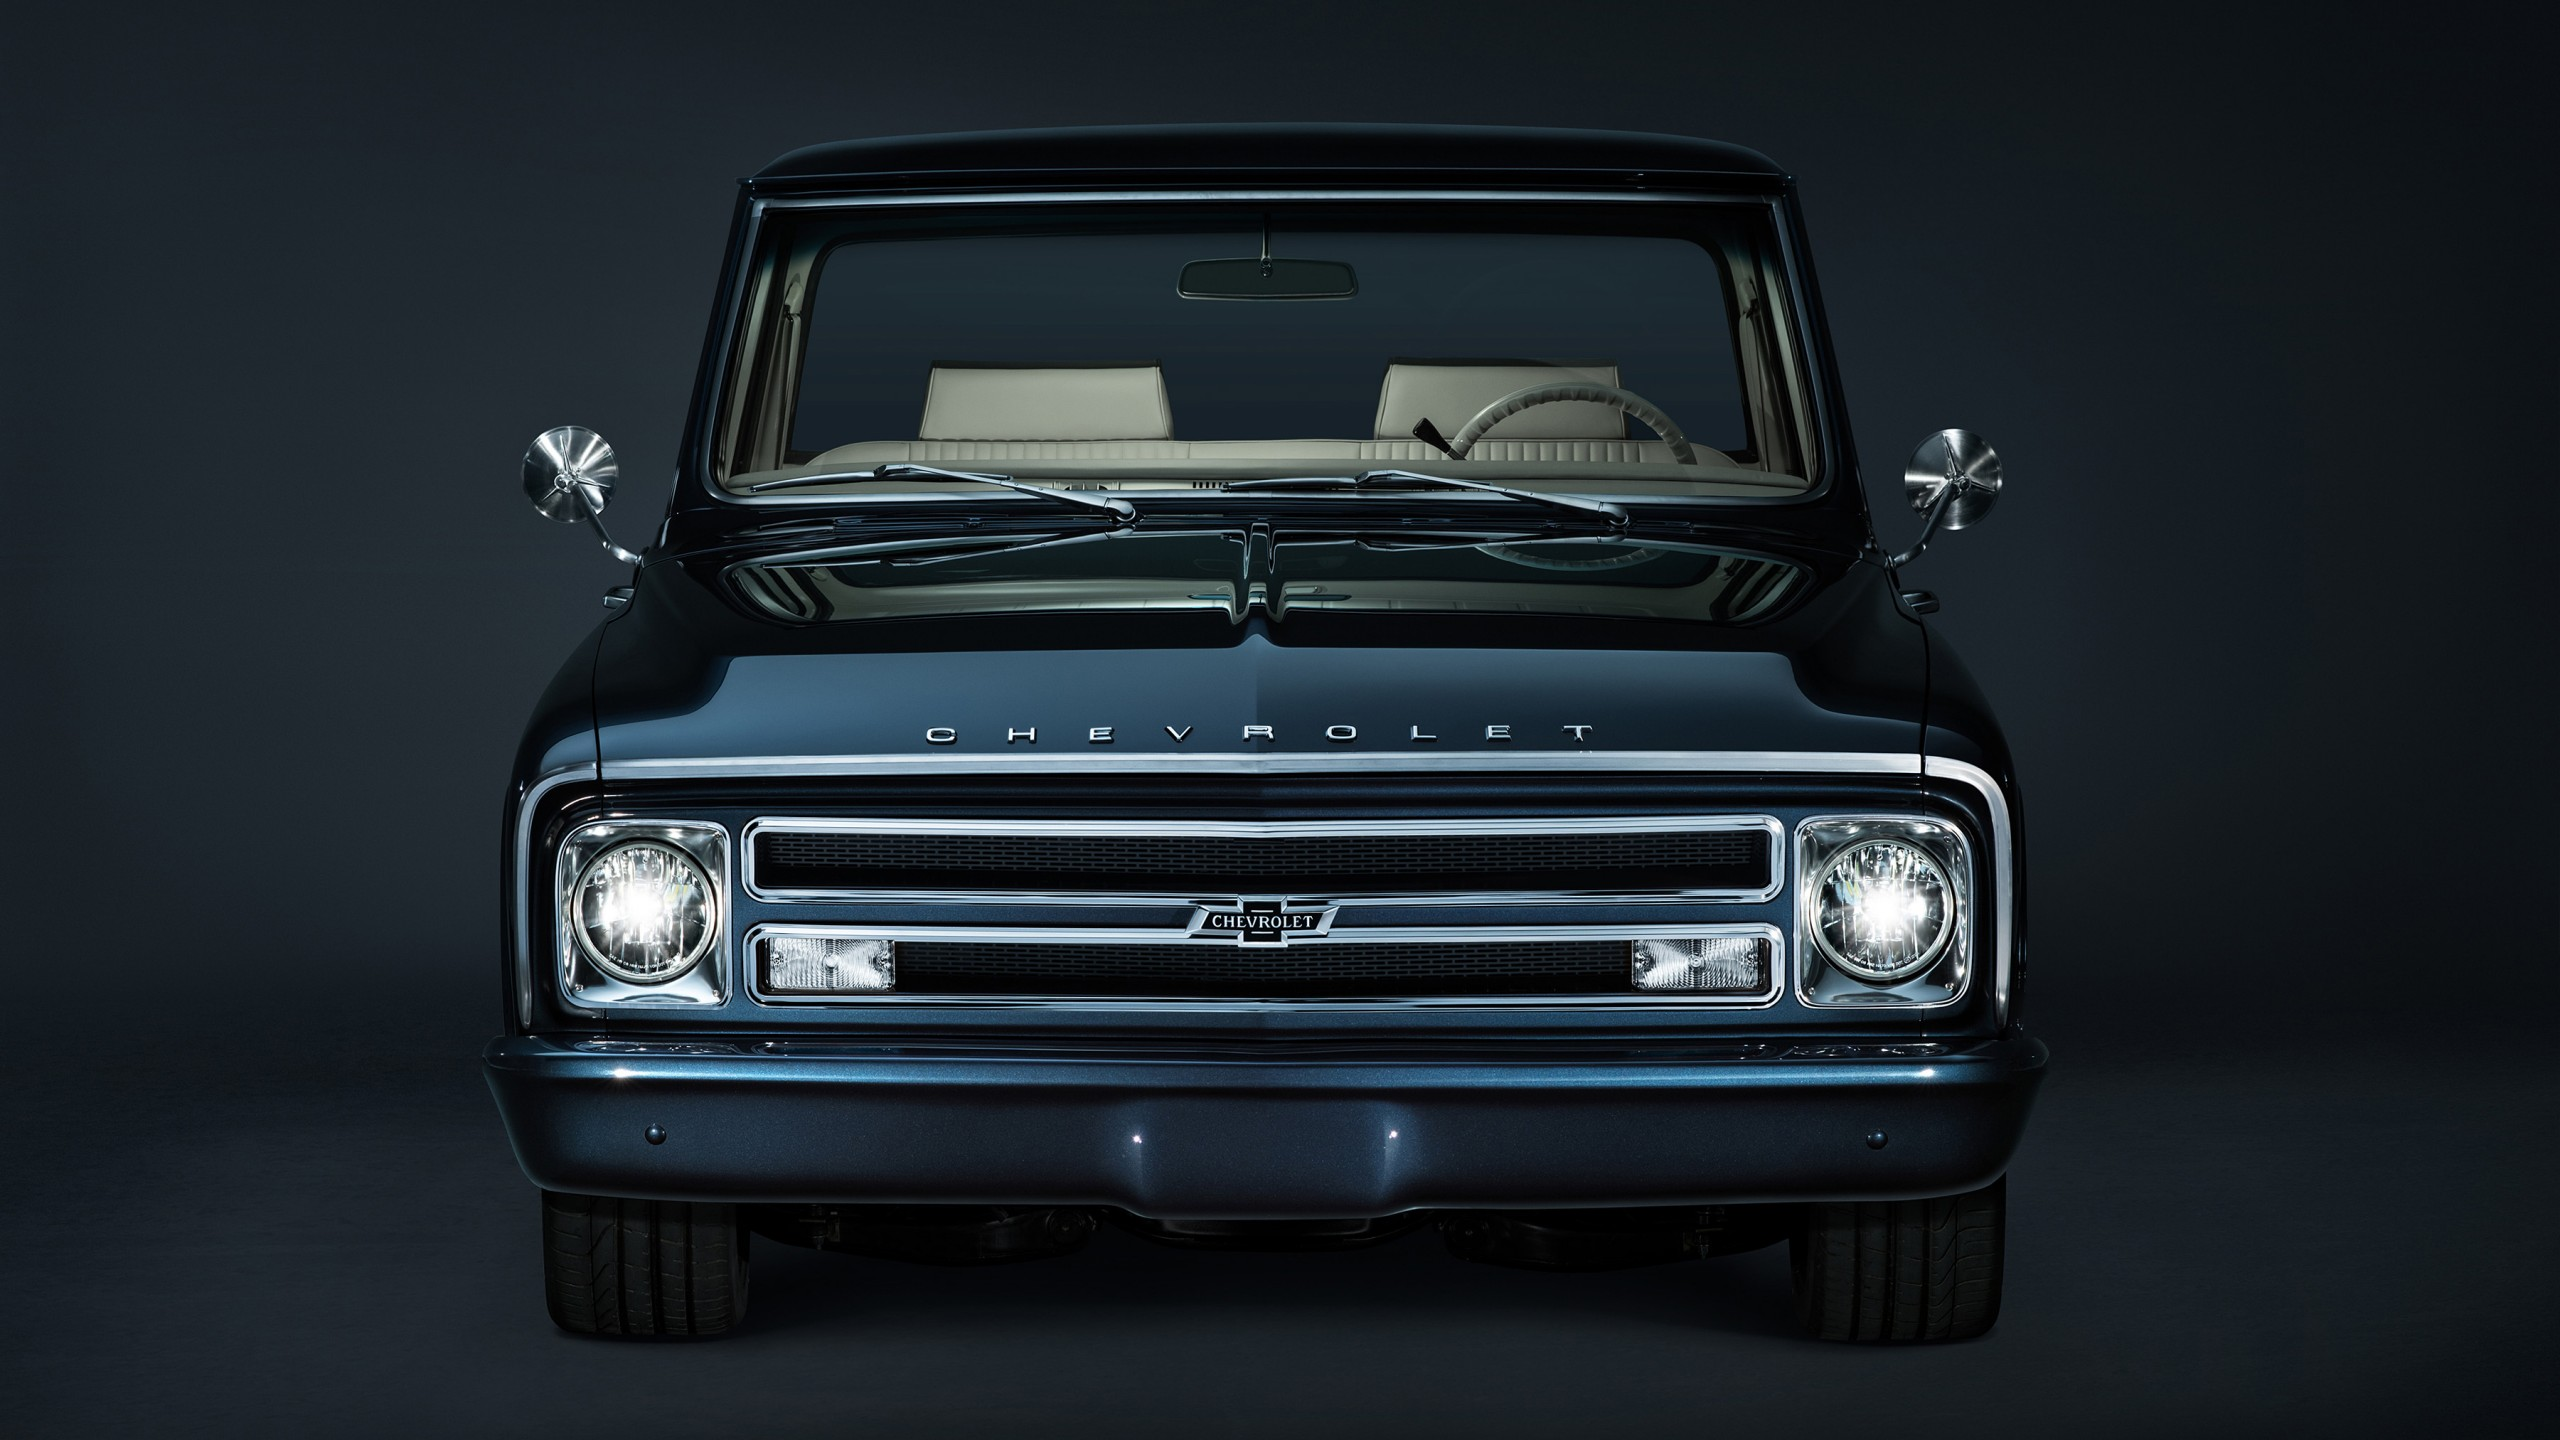 1967 Chevrolet C10 Centennial SEMA Truck Wallpaper | HD ...